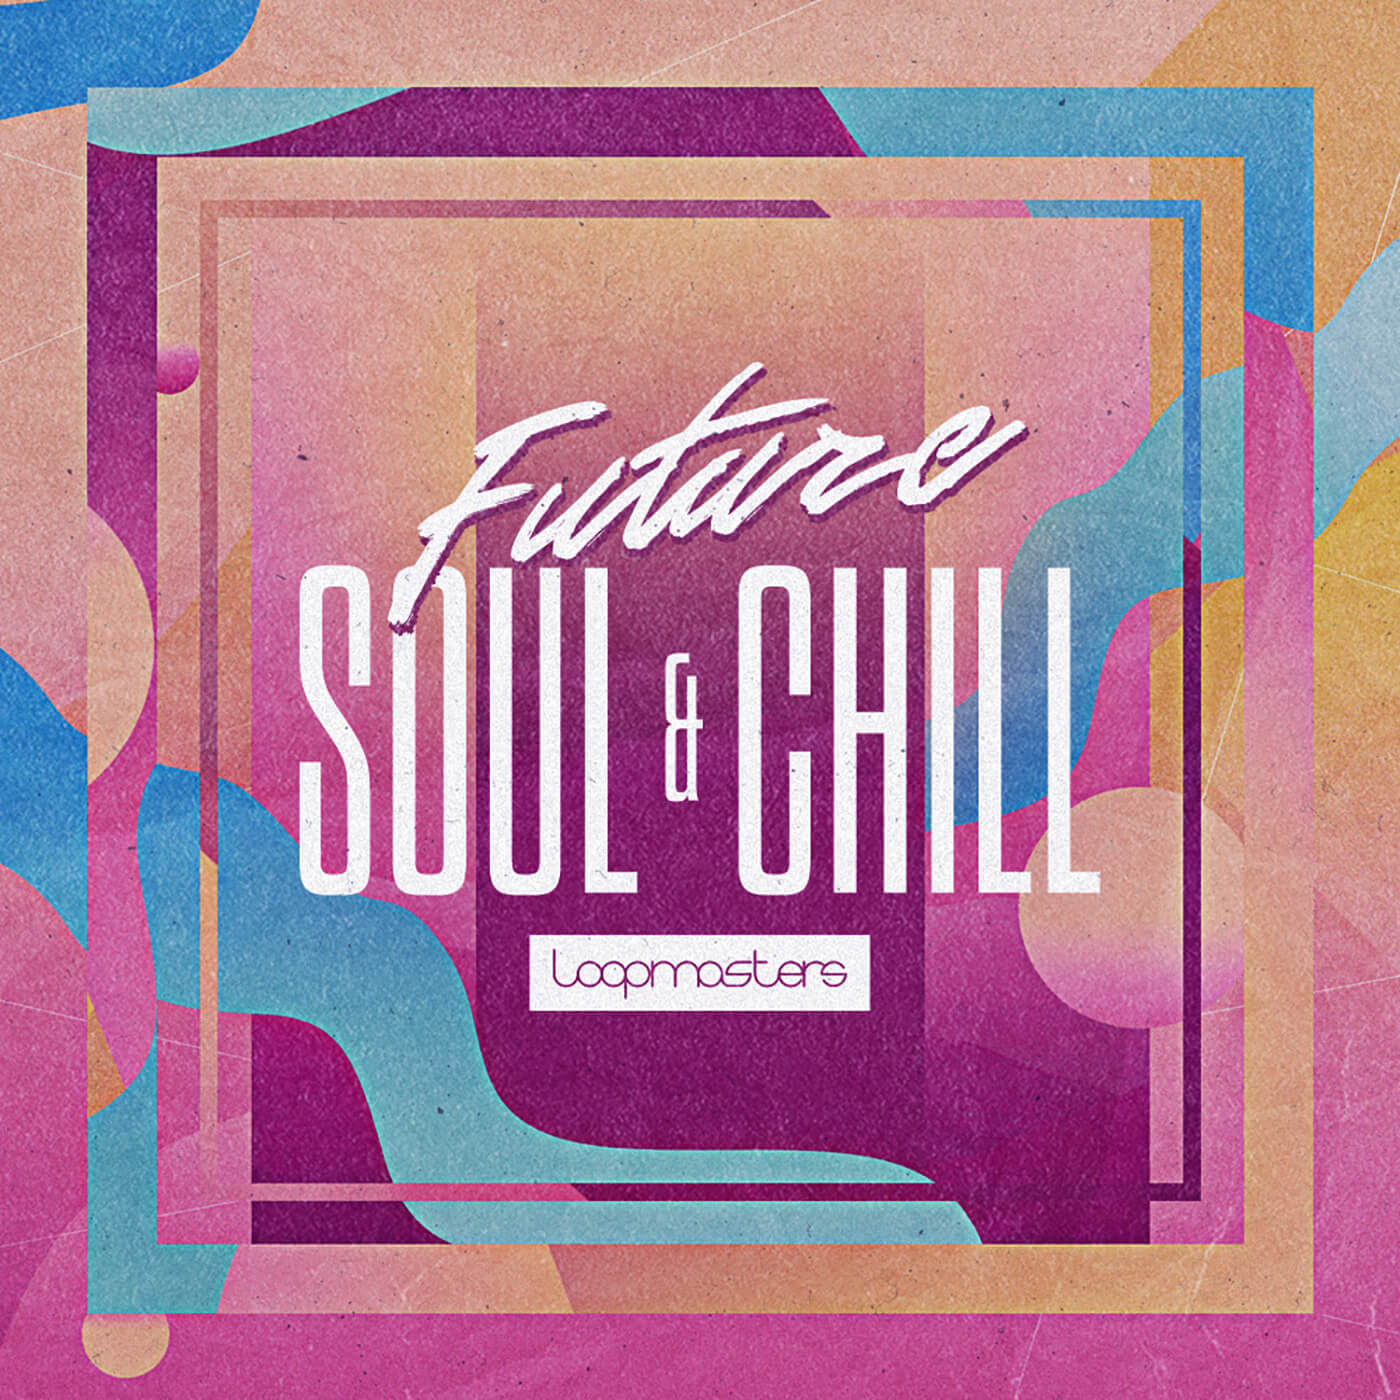 Loopmasters - Future Soul & Chill